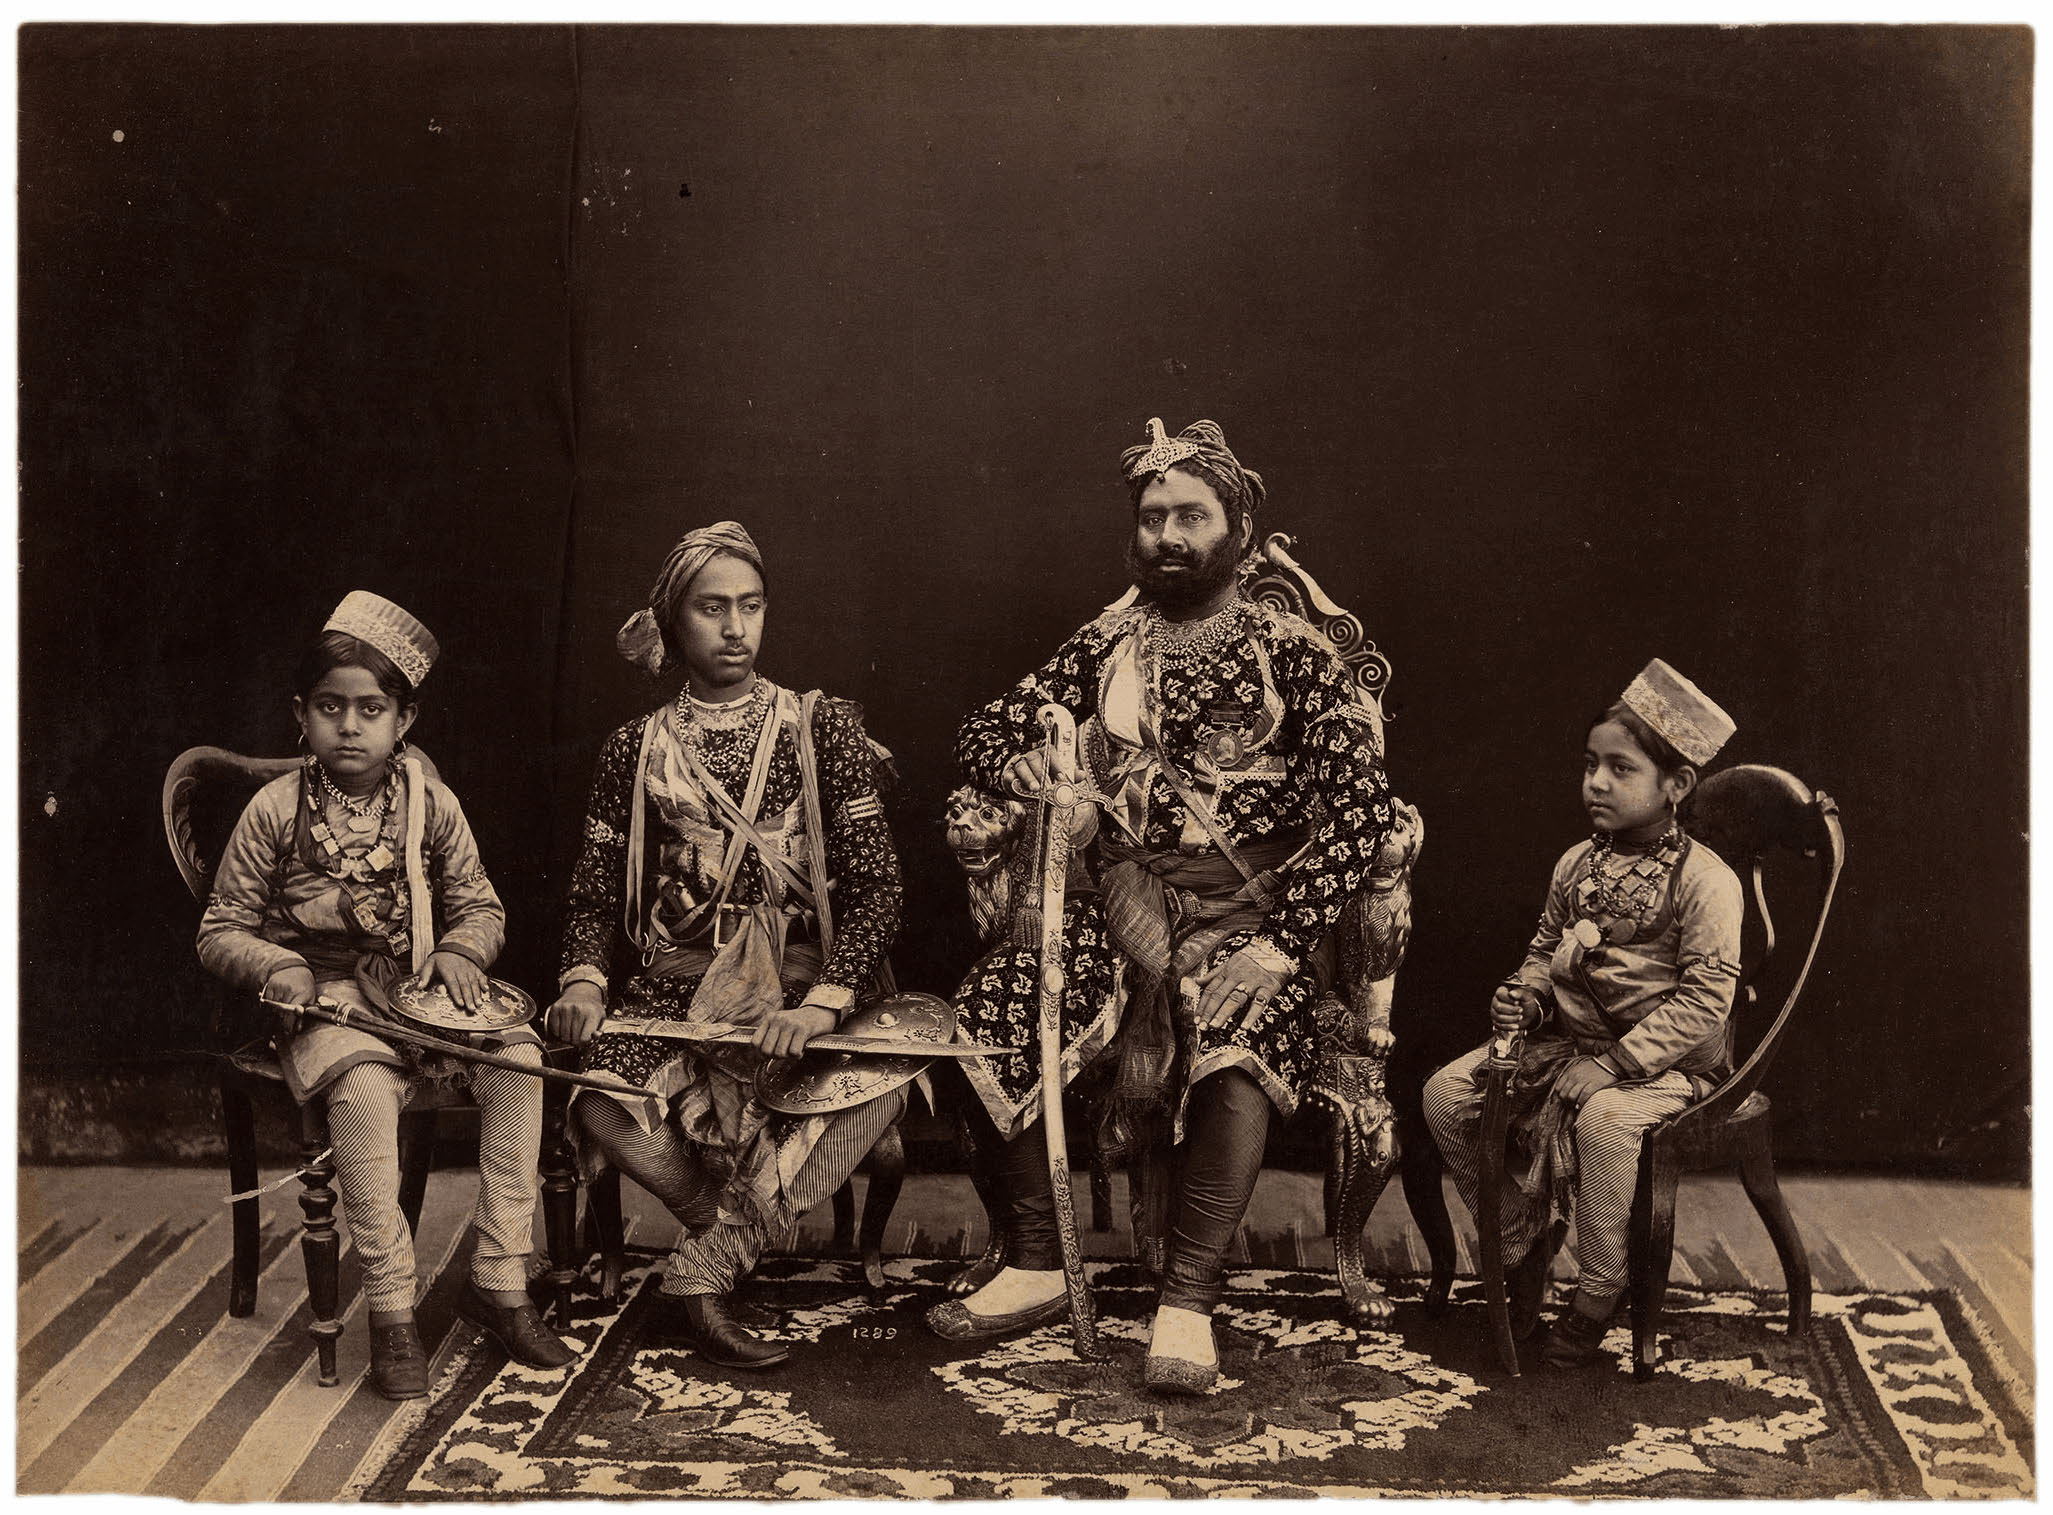 Cat. 17. Raja Deen Dayal. The Maharaja of Ajaigarh with his Three Sons. Bundelkhand, Central India, circa 1882. Albumen print